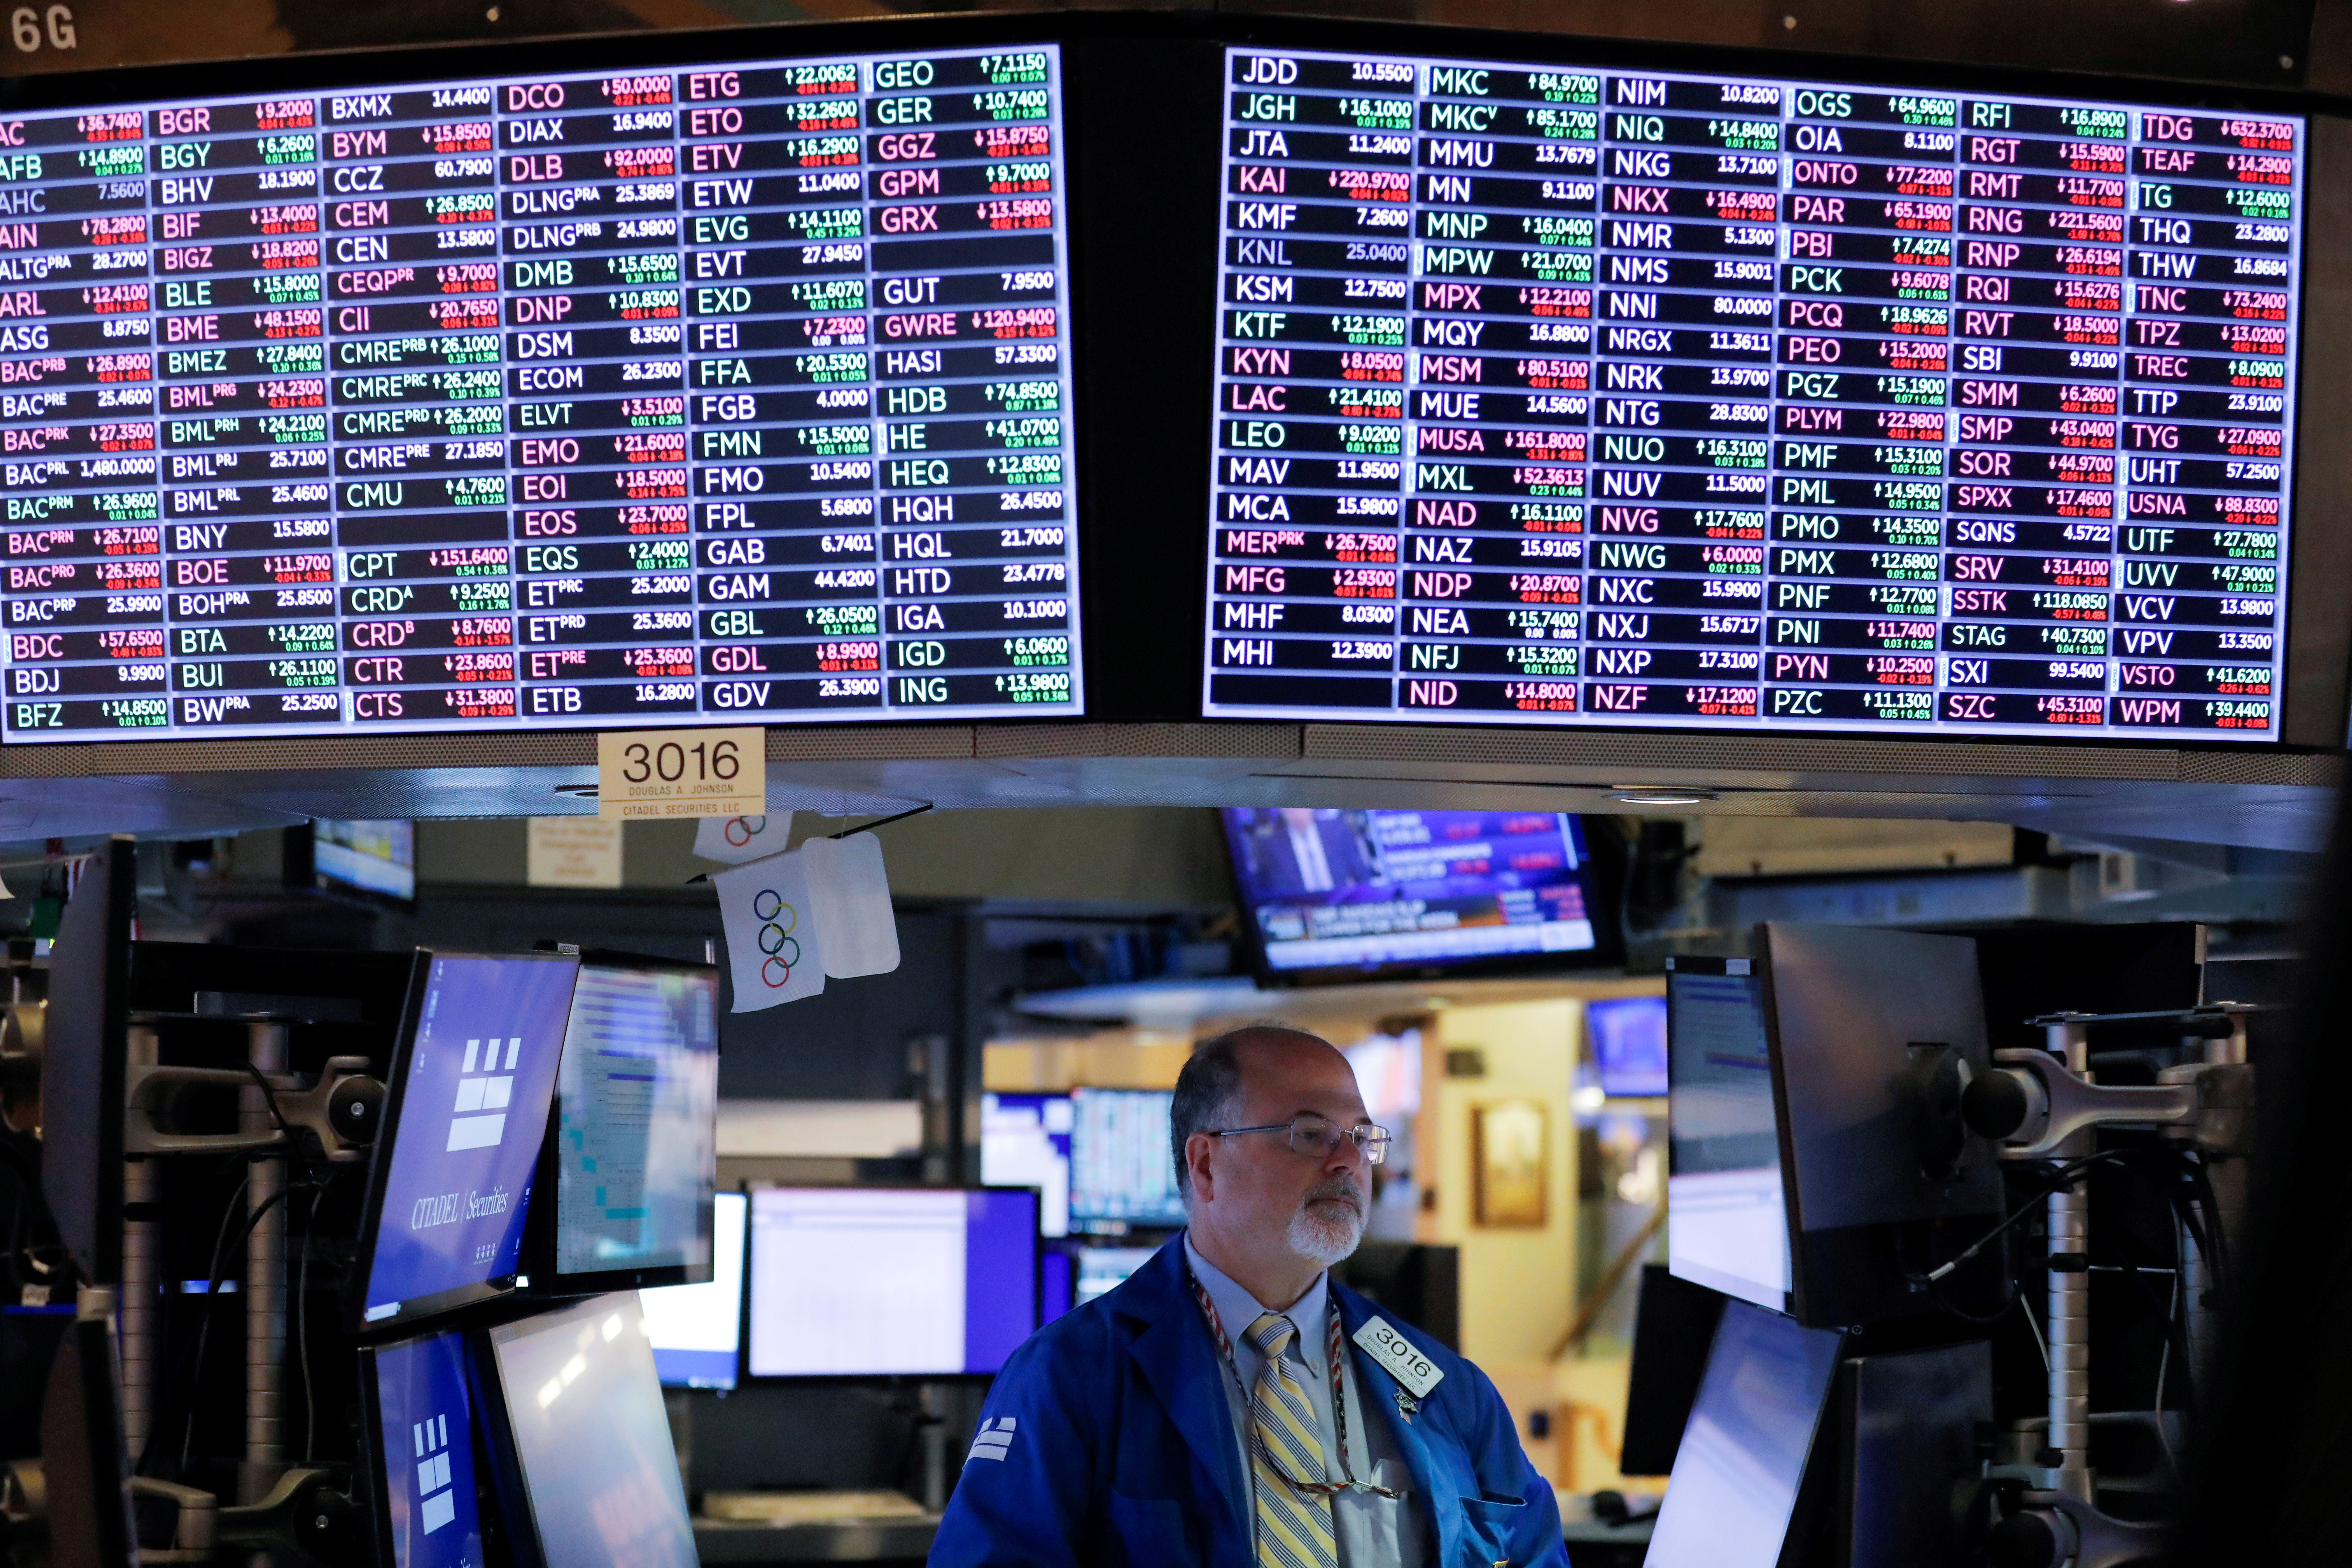 A trader works on the floor at the New York Stock Exchange (NYSE) in Manhattan, New York City, U.S., September 24, 2021. REUTERS/Andrew Kelly/File Photo